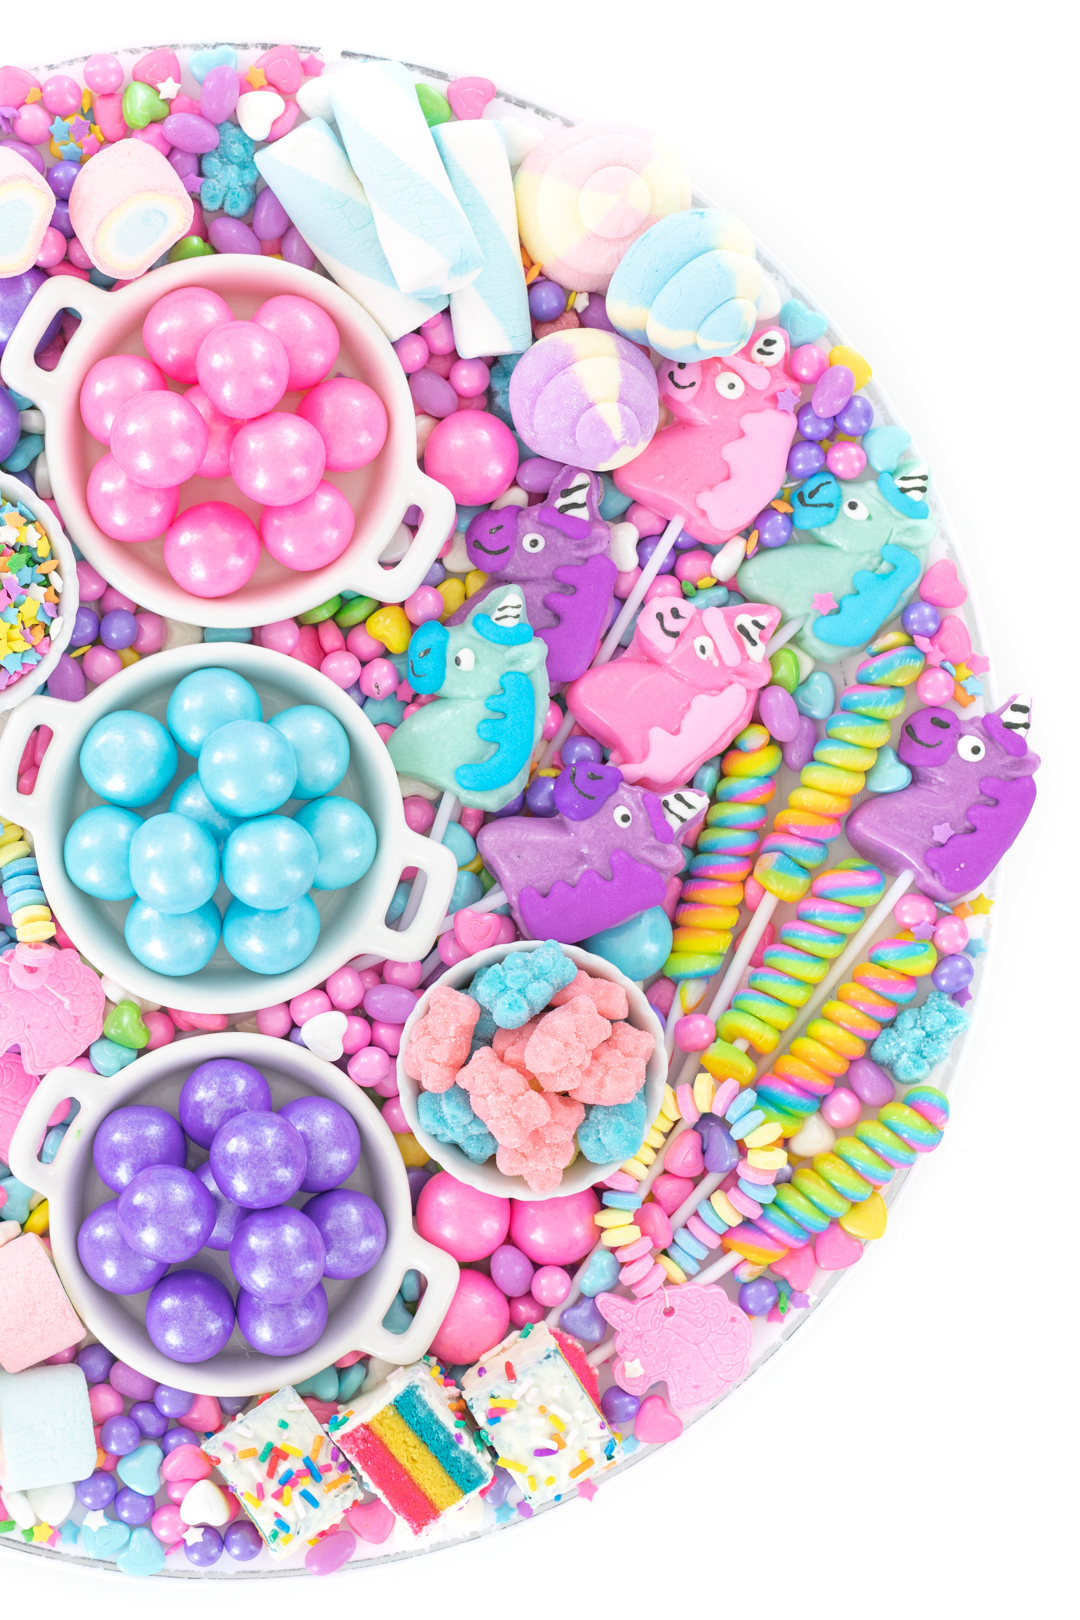 tray of pastel pink, blue and purple candy and gumballs